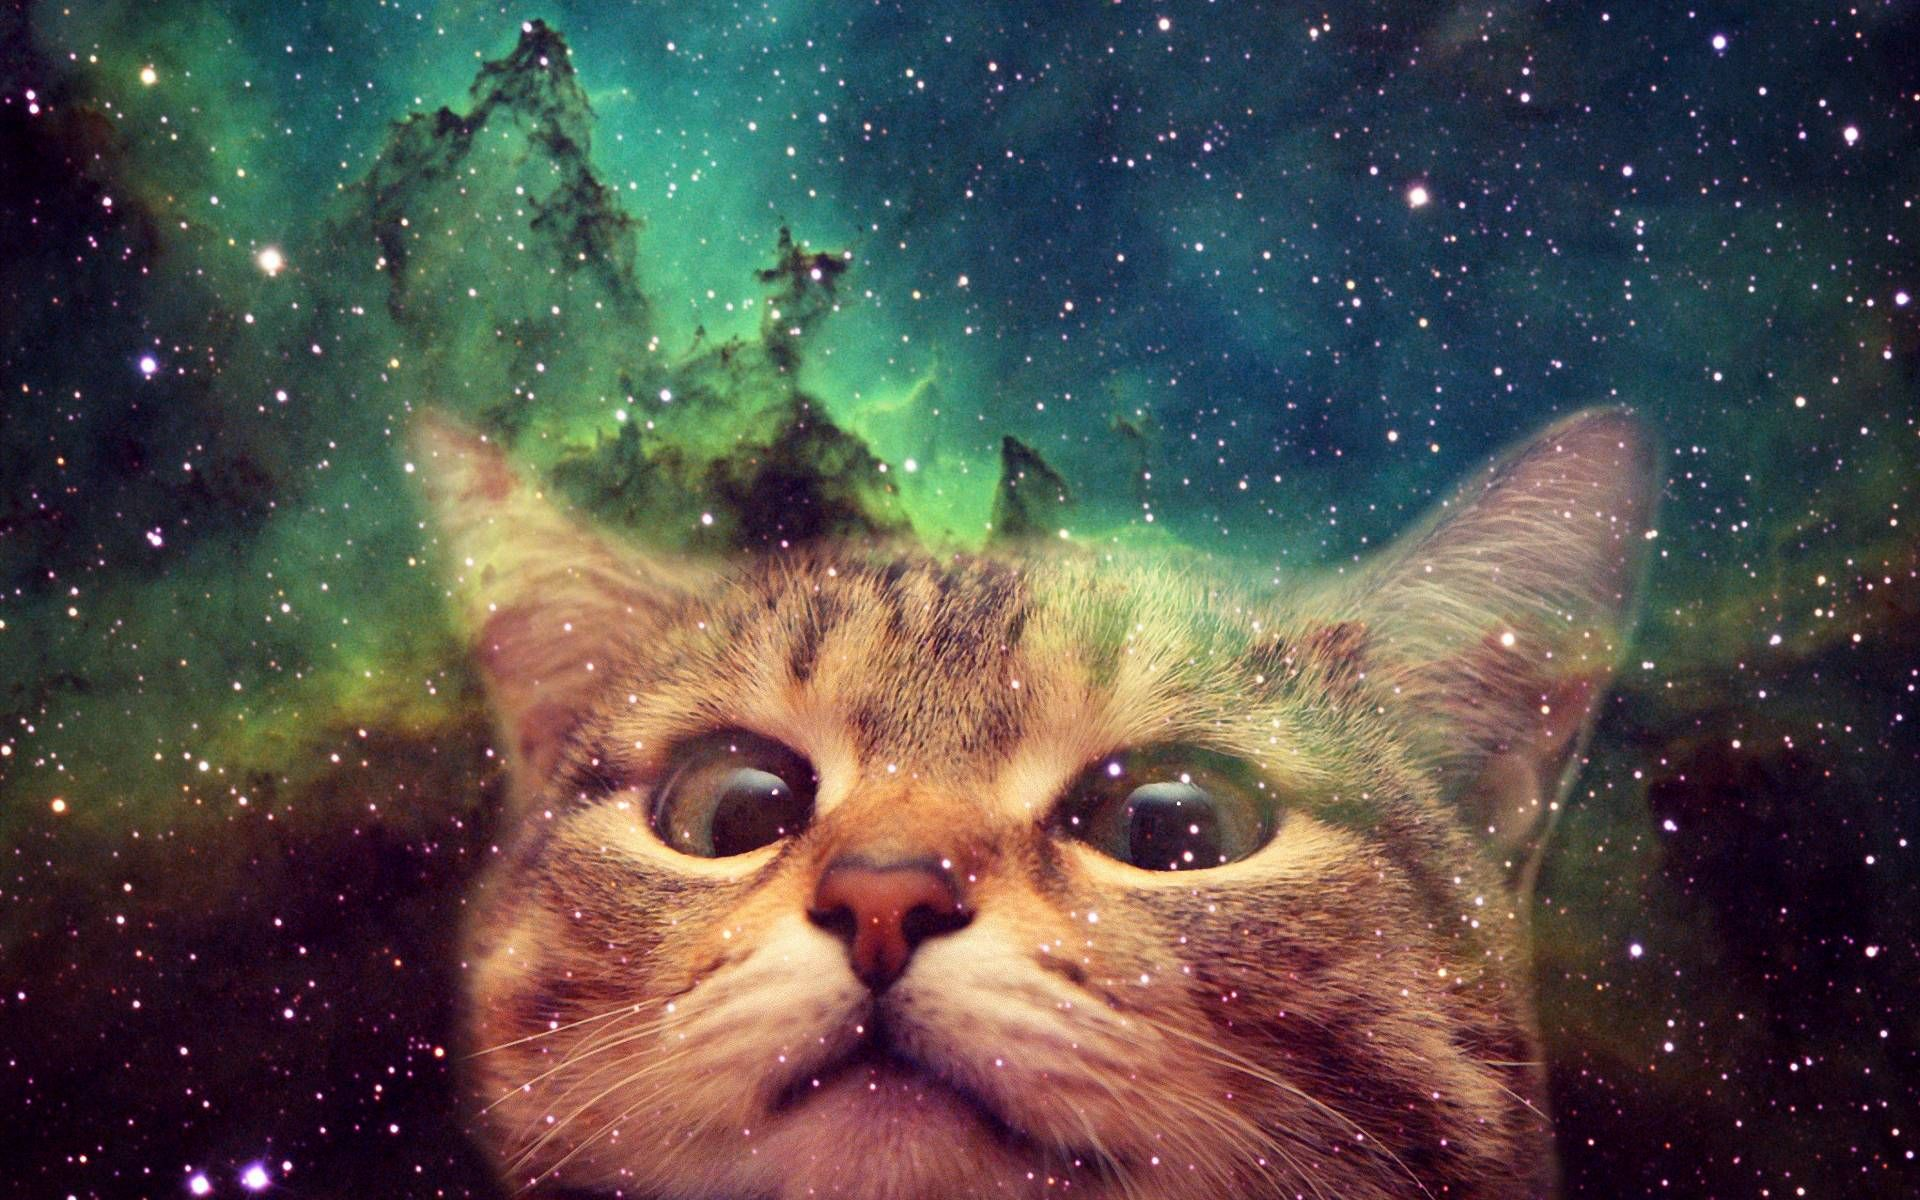 Hook Up Your Desktop With One Of These Awesome Cats In Space Wallpapers Caveman Circus Space Cat Cat Wallpaper Cat Wall Art